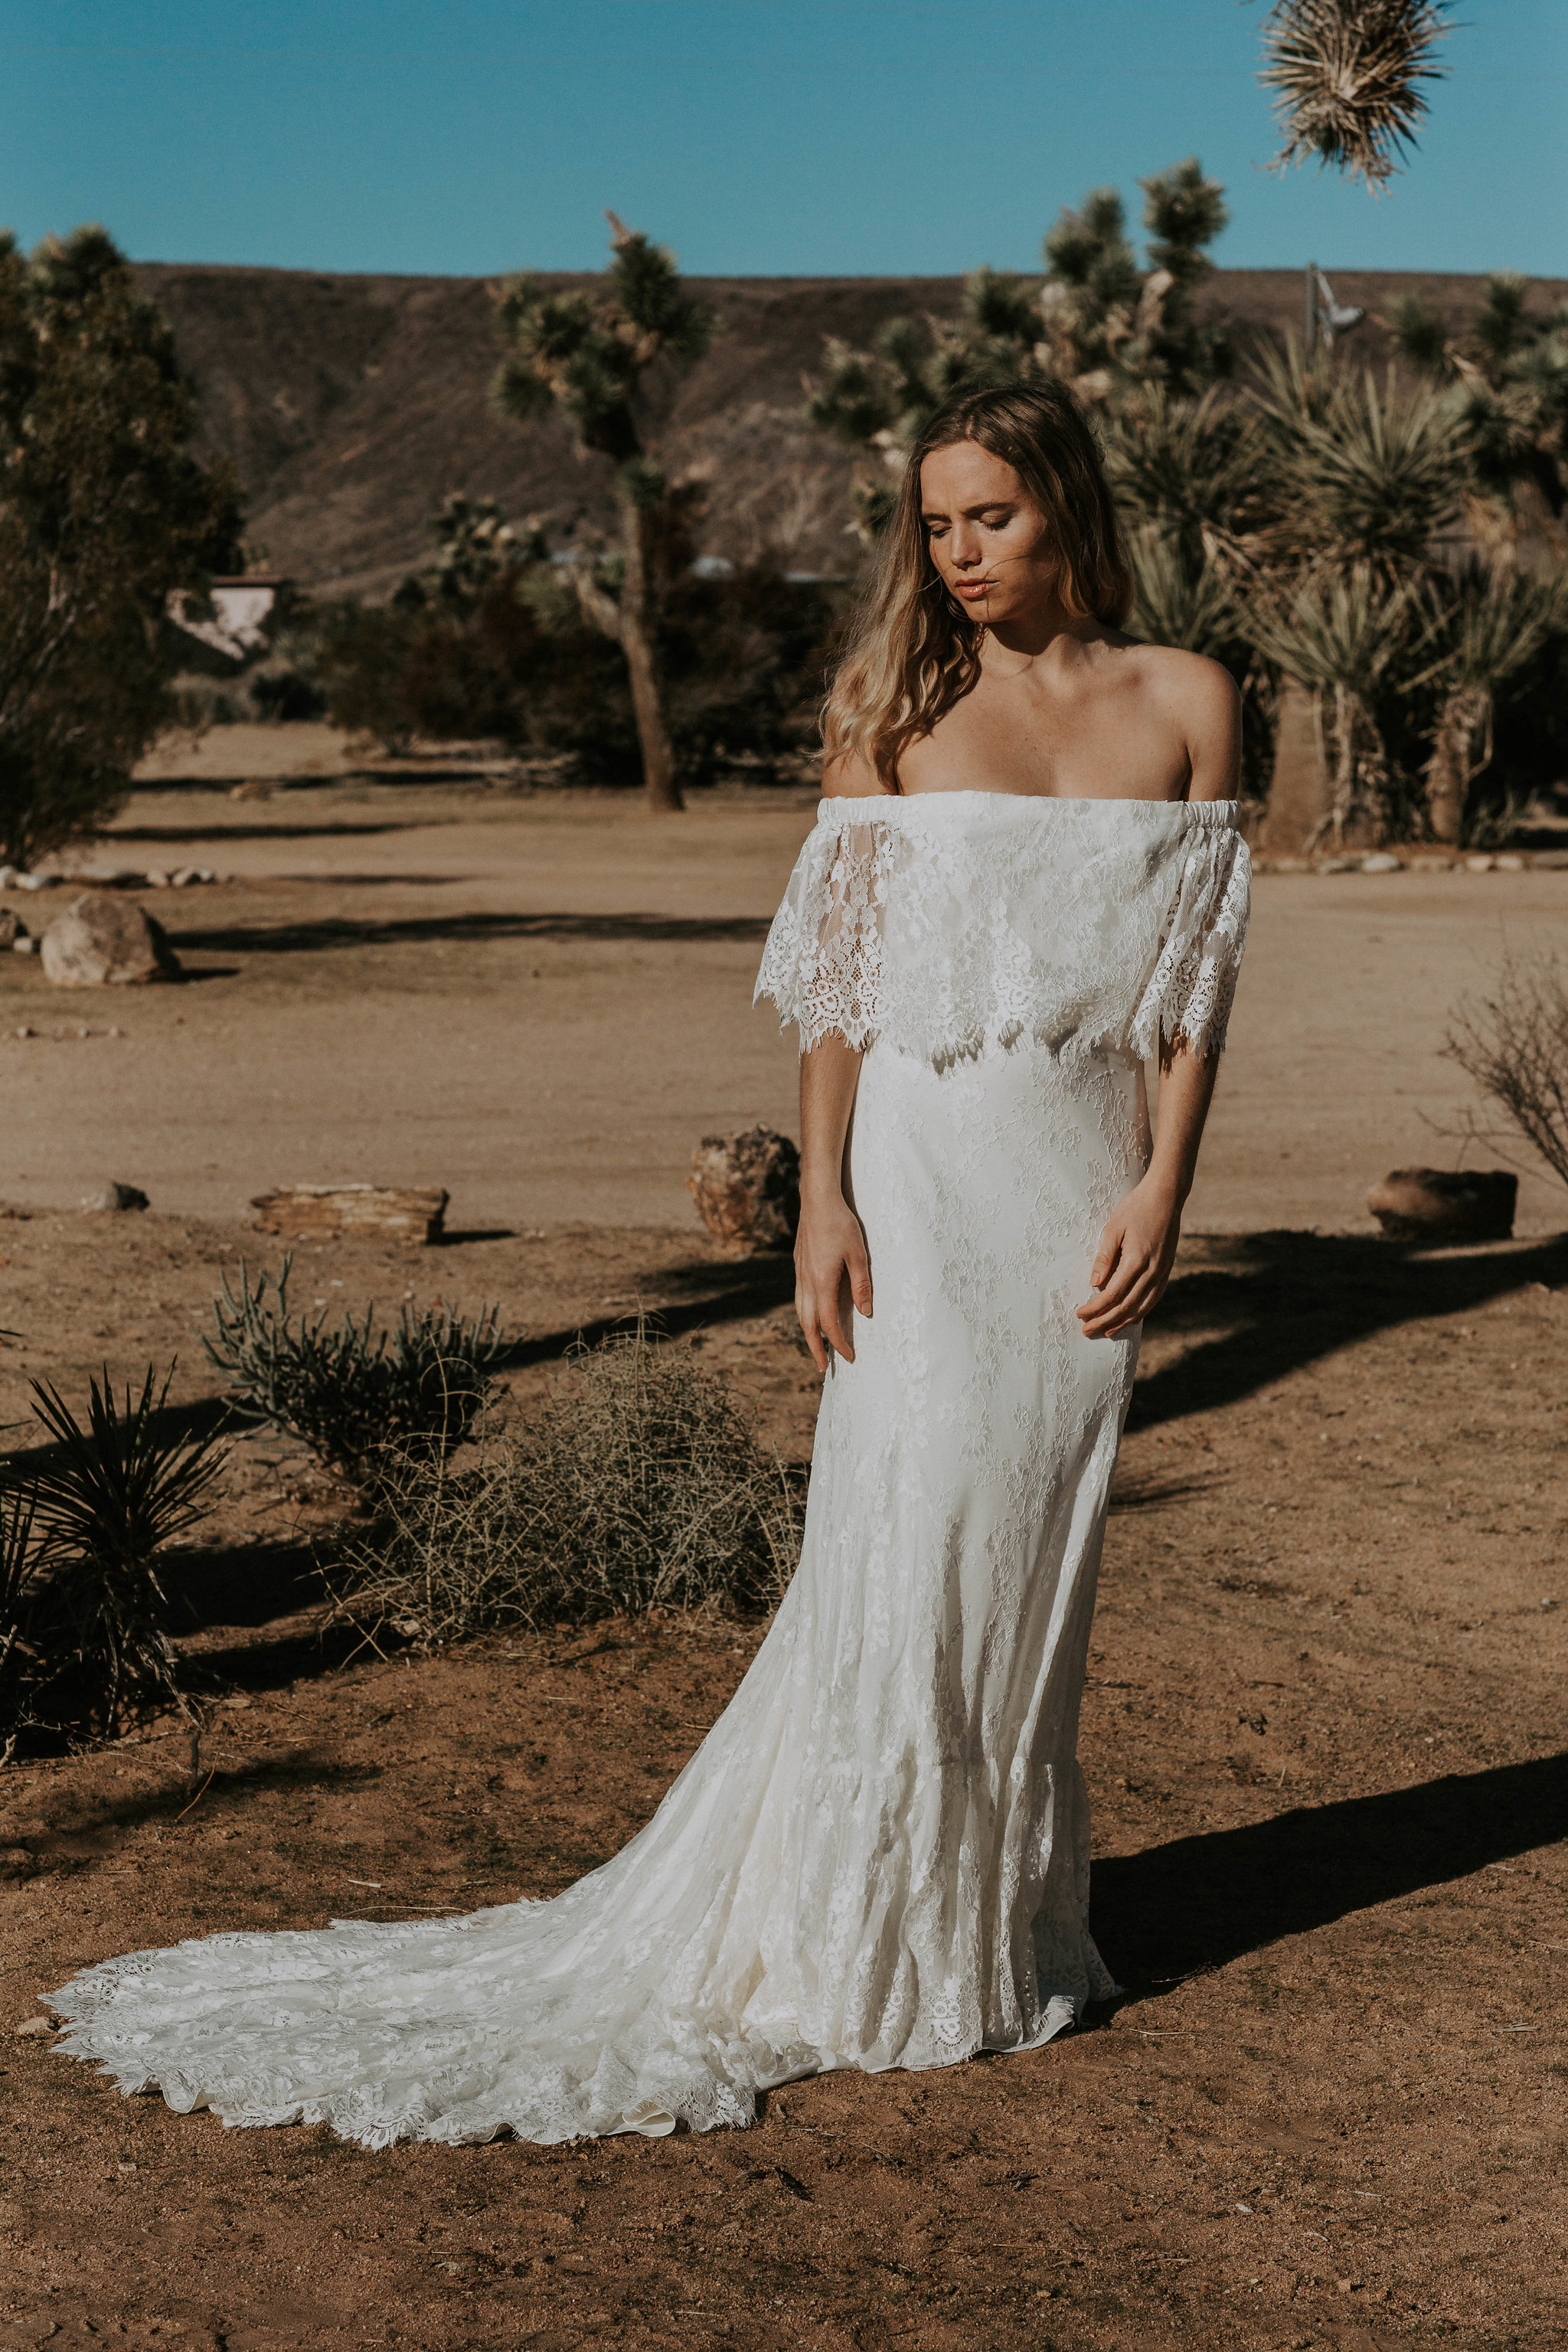 Daughters of simone boho wedding dress